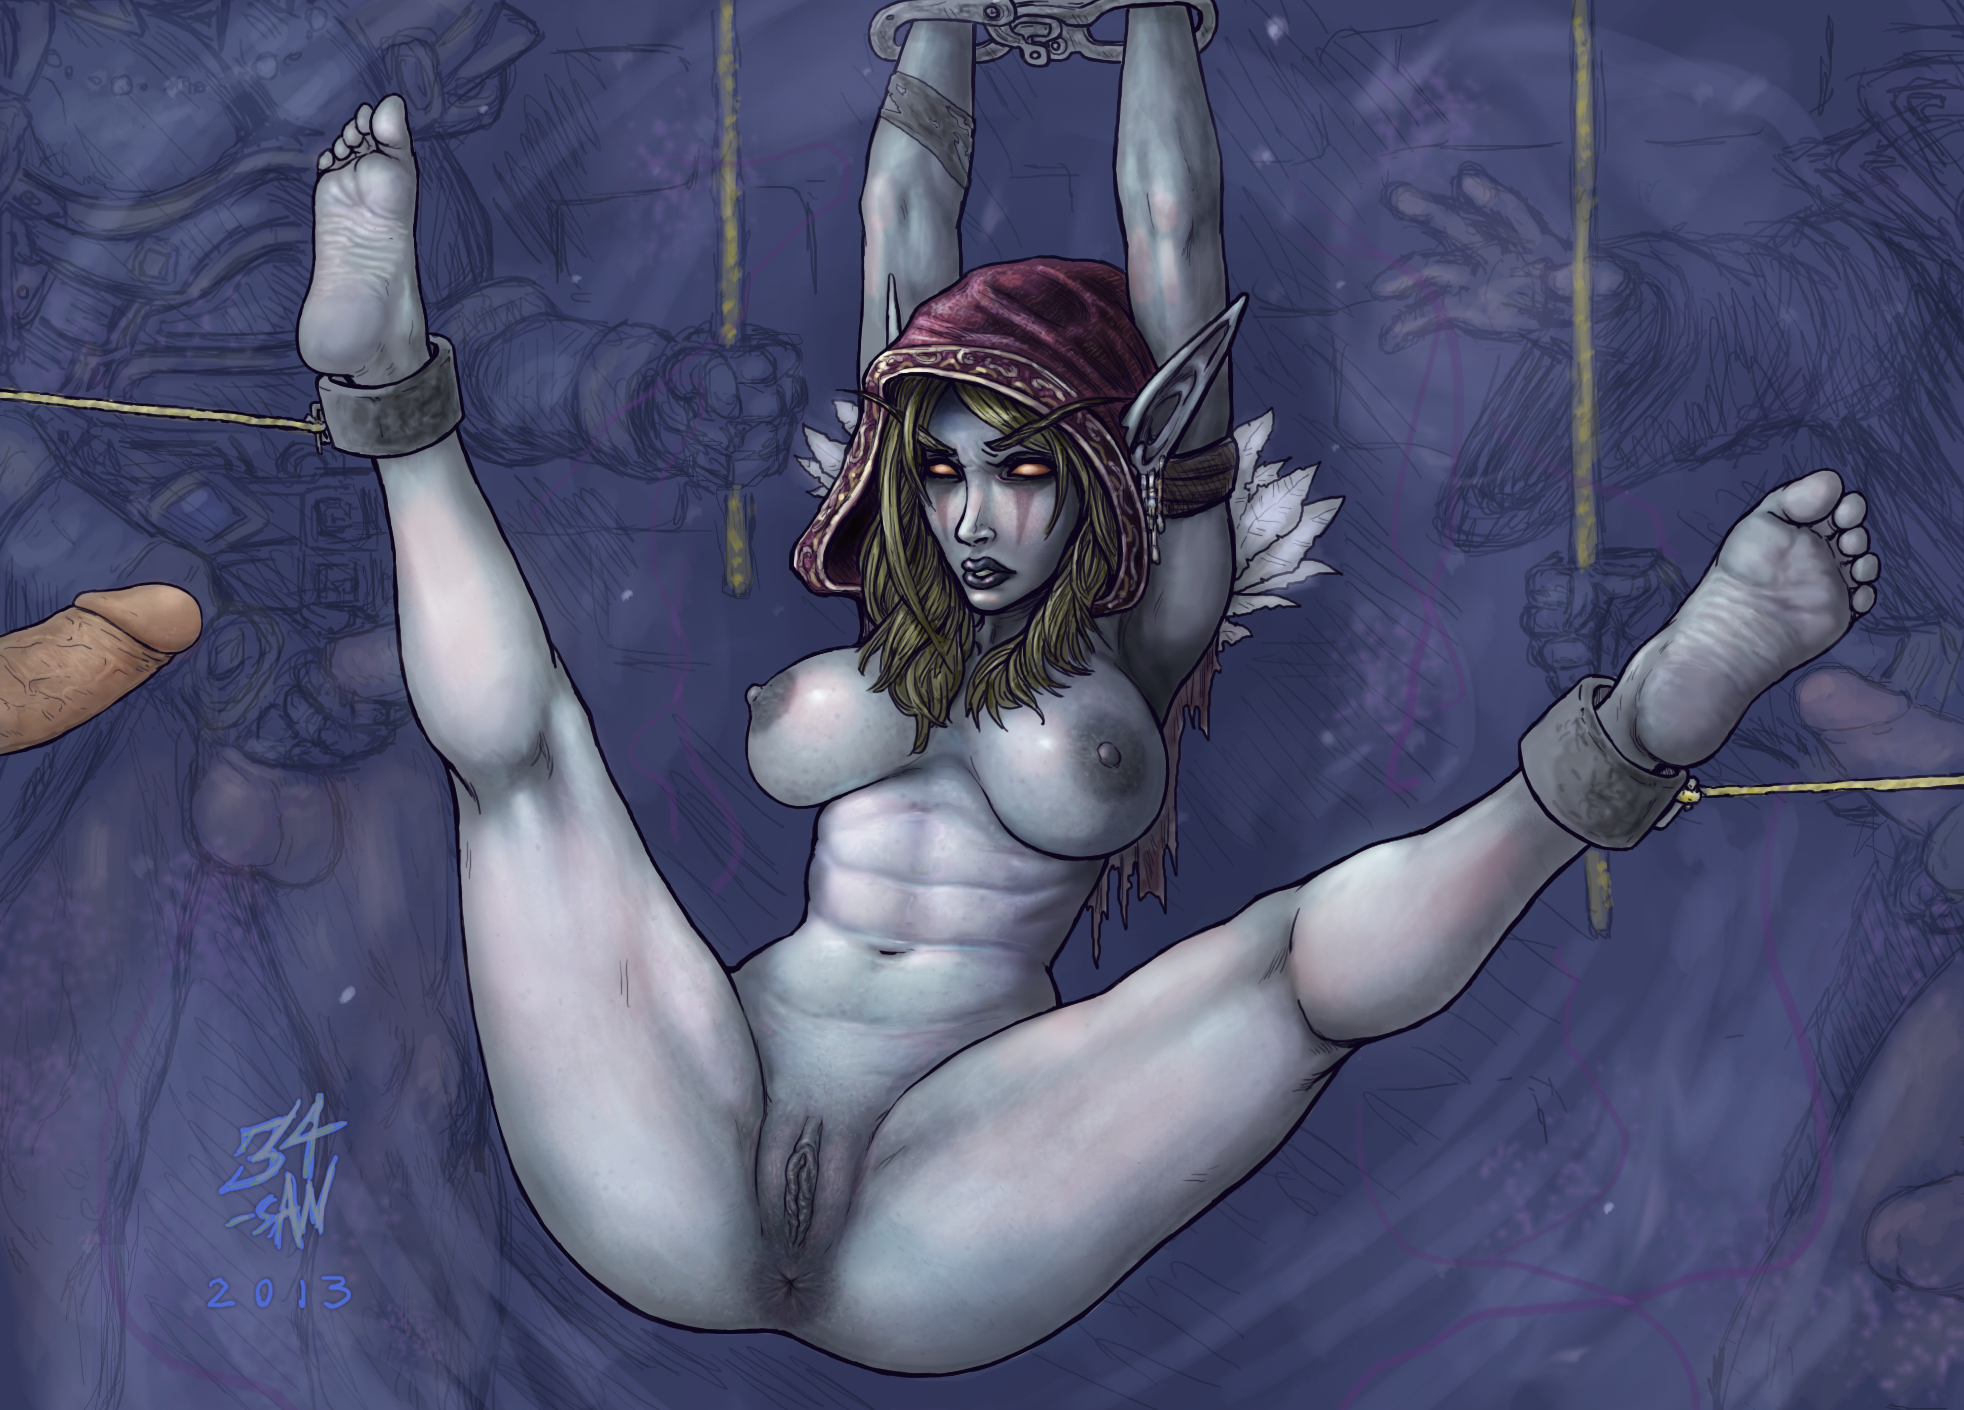 Sylvanas with tyrande nude sex comic